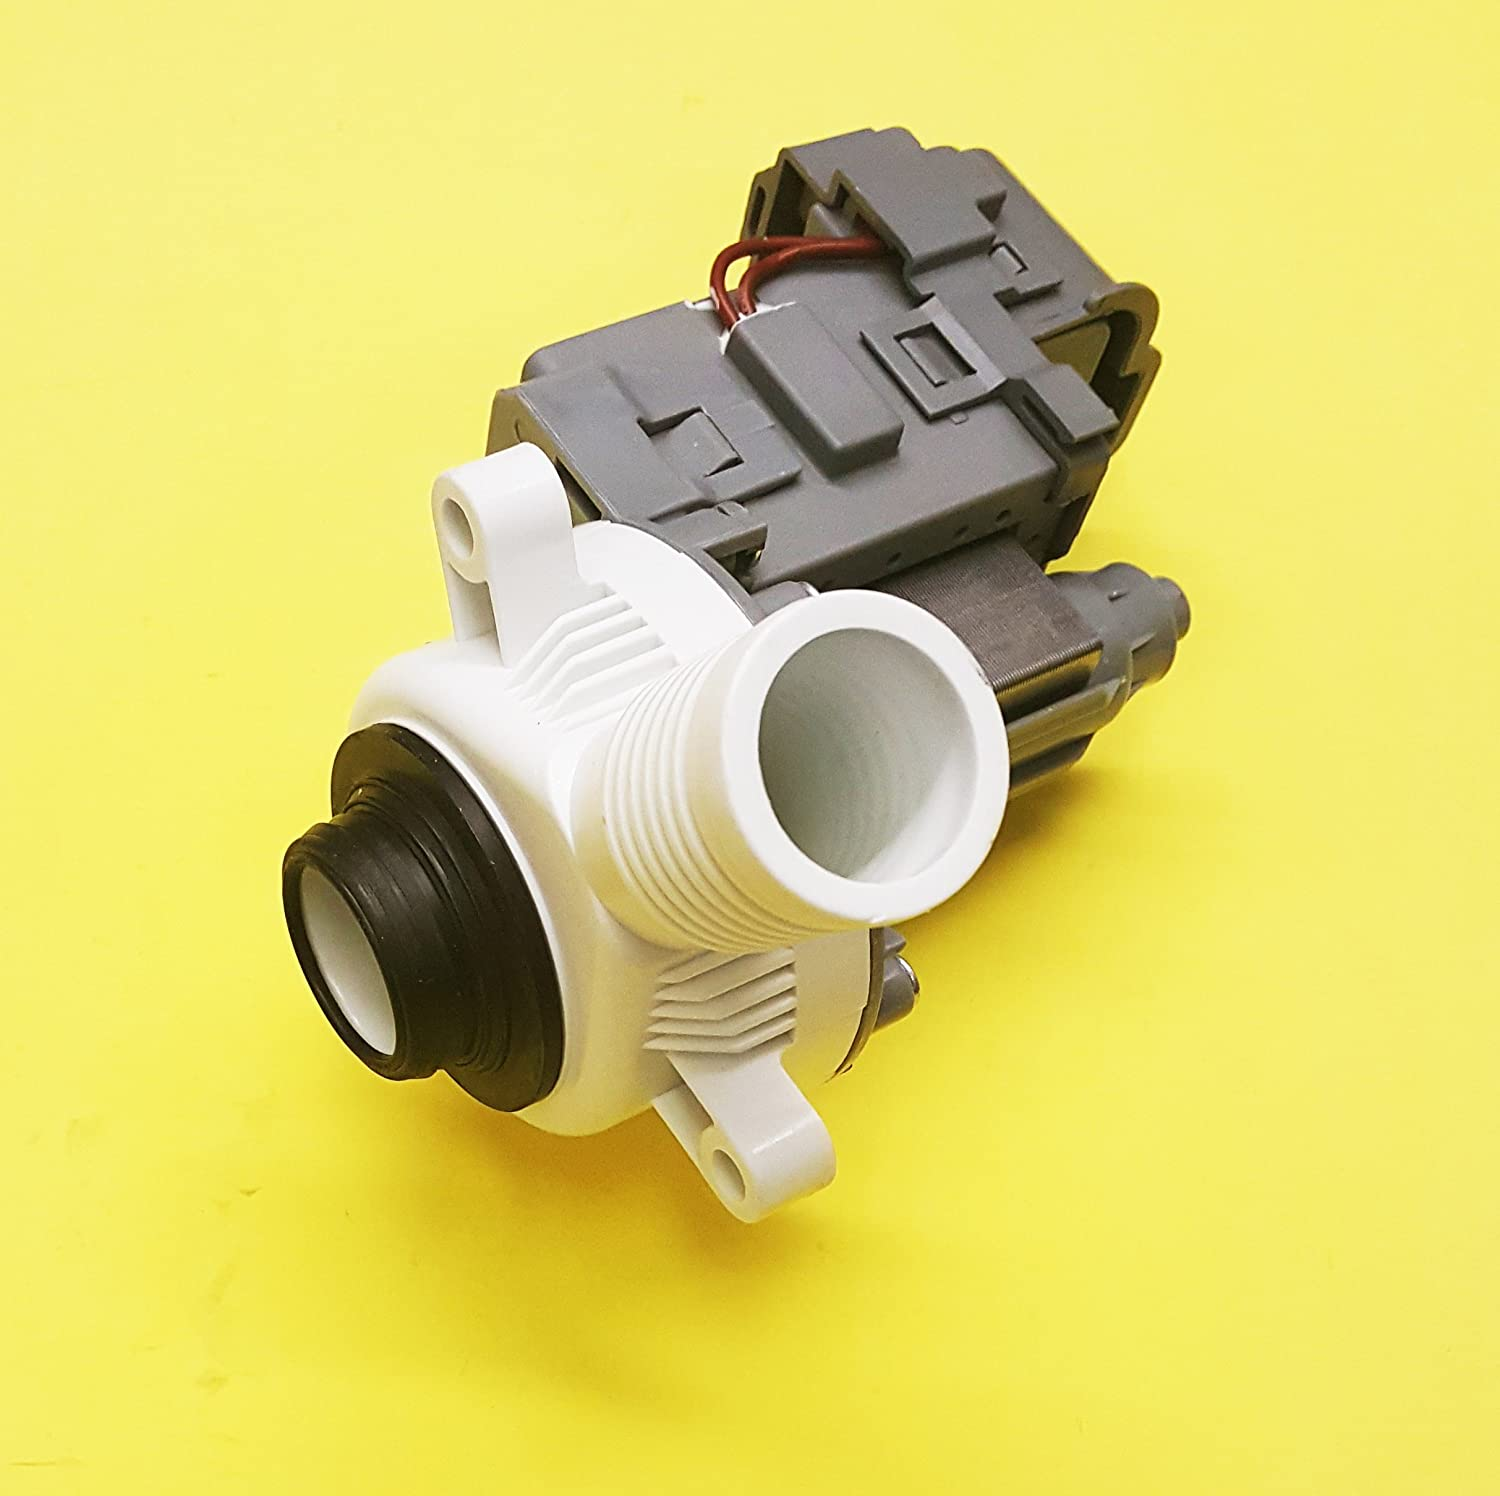 EXPW10276397 Drain Pump (Replaces WPW10276397 W10276397 AP6018417 W10276397 PS11751719 ) For Whirlpool, Maytag, KitchenAid, Jenn-Air, Amana, Magic Chef, Admiral, Norge, Roper